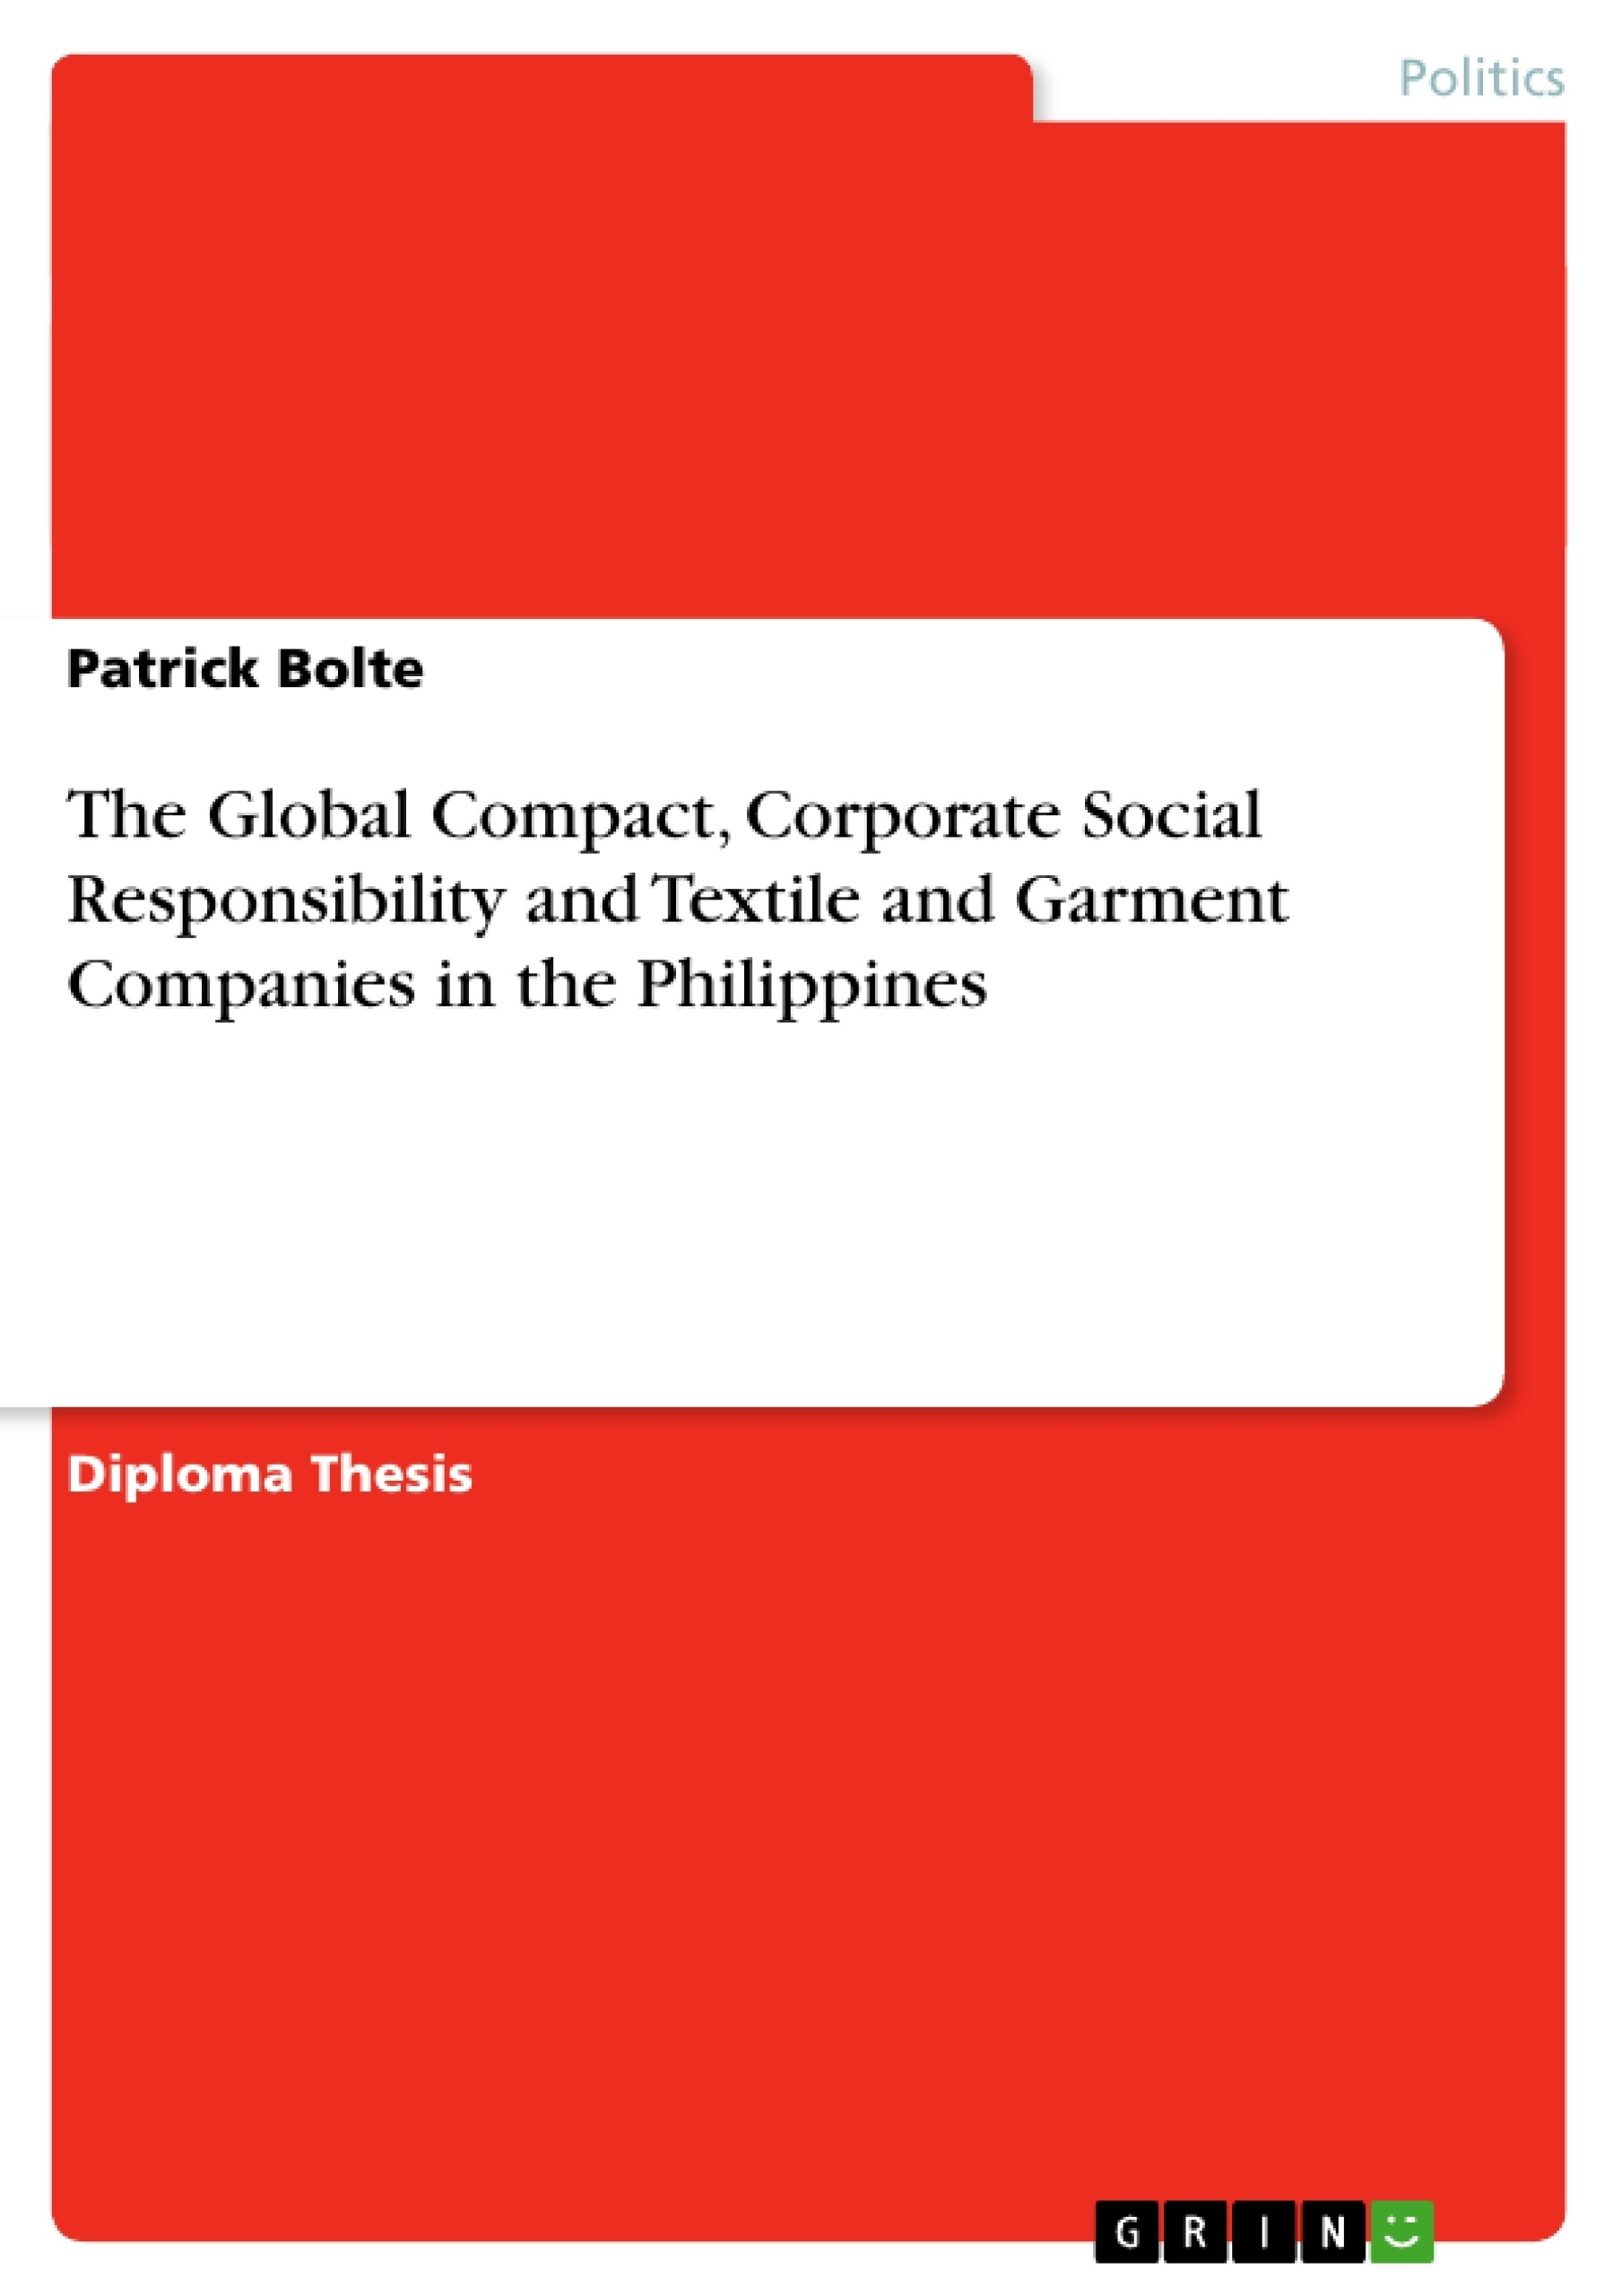 Book Series: Critical Studies on Corporate Responsibility, Governance and Sustainability